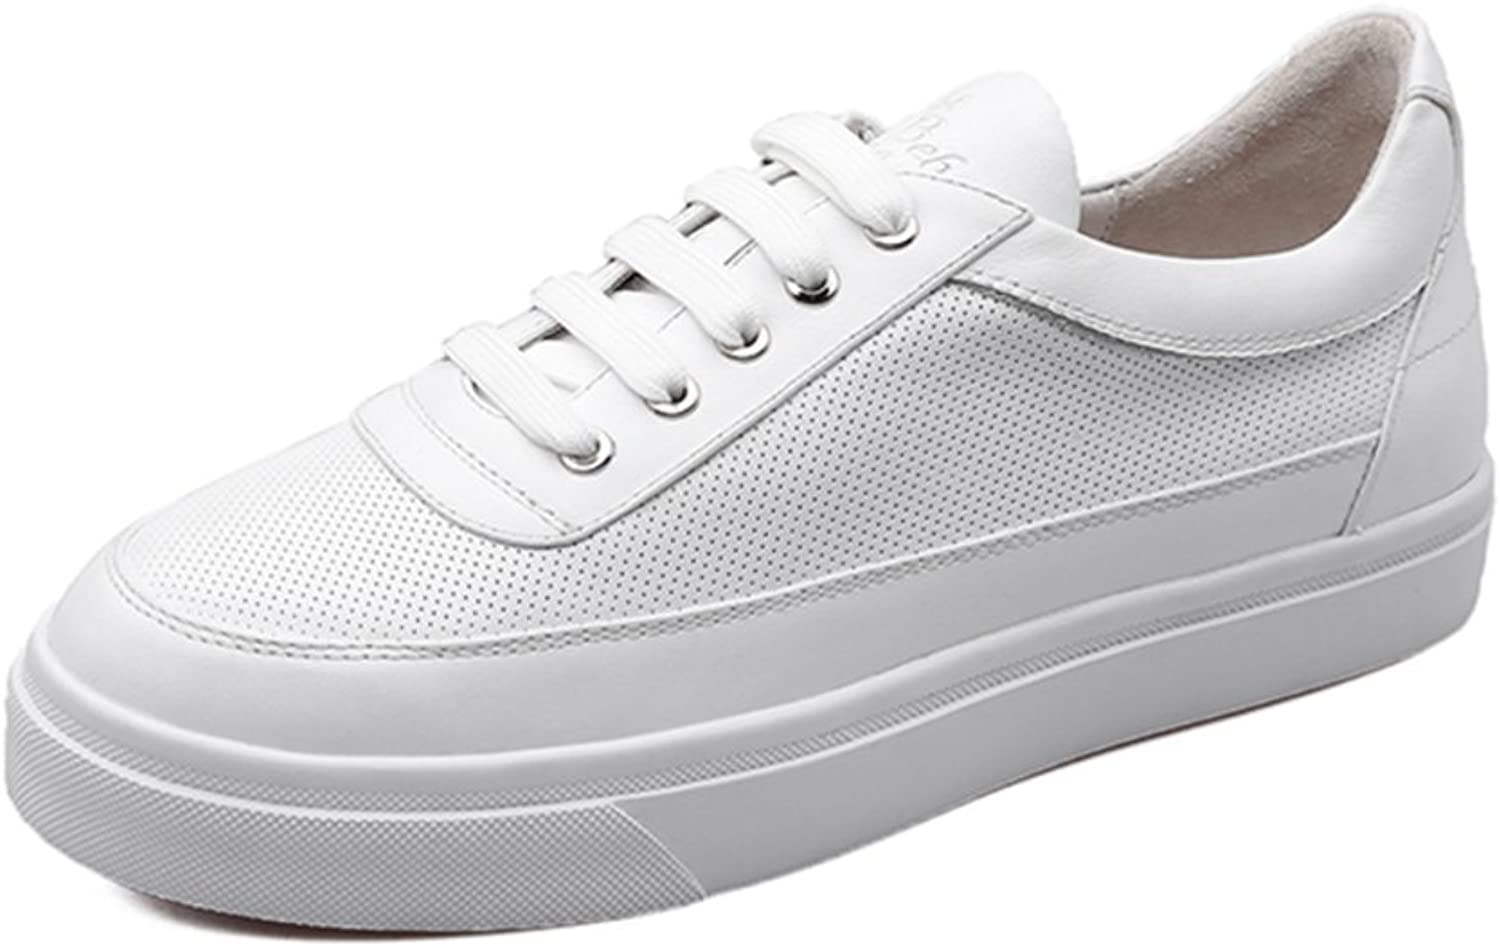 Huhuj Round Solid White shoes Student Board shoes Low-Heeled shoes Recreational Sports